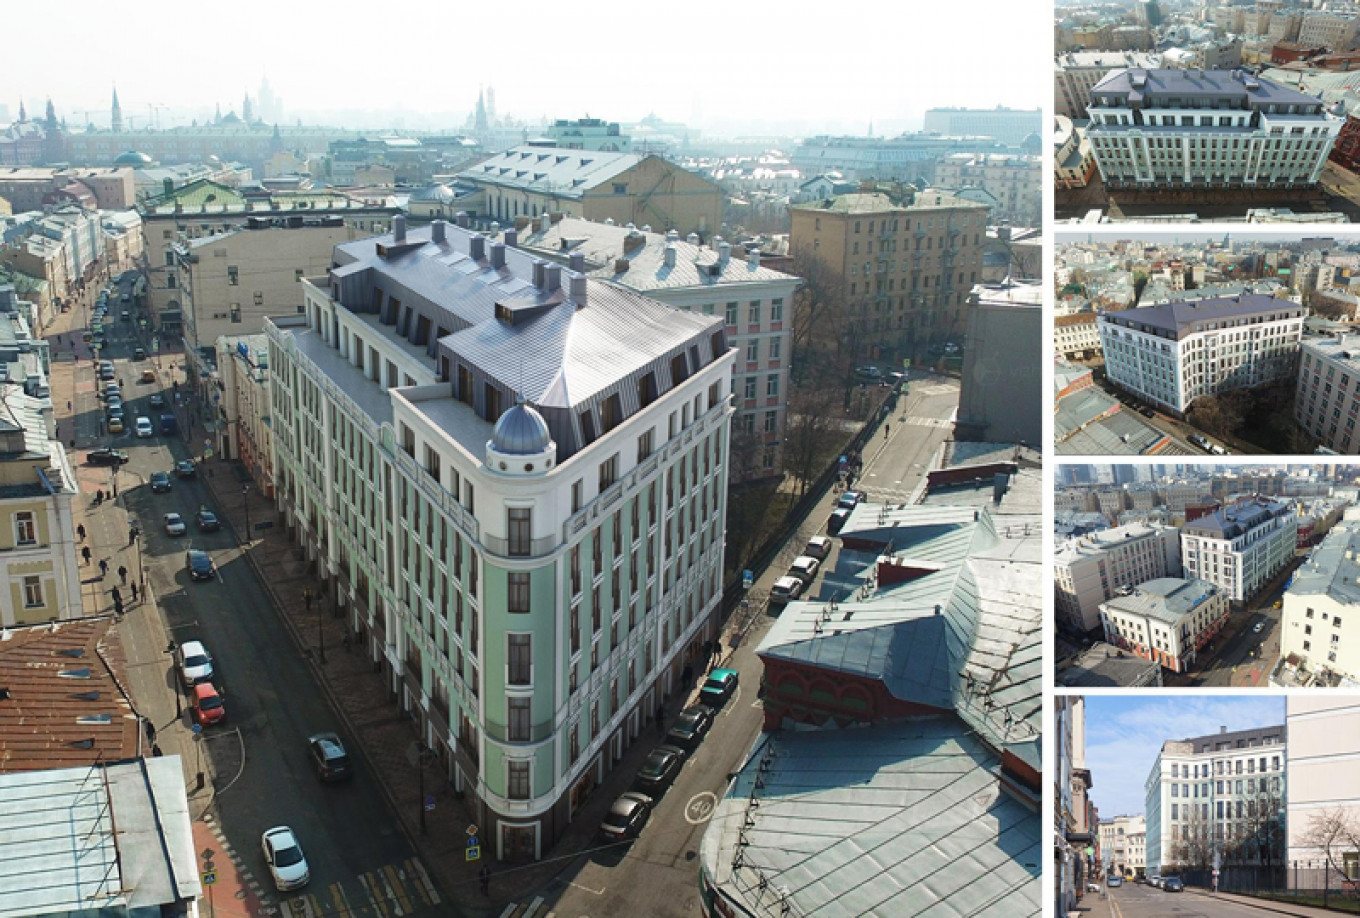 The planned development moskvichmag.ru